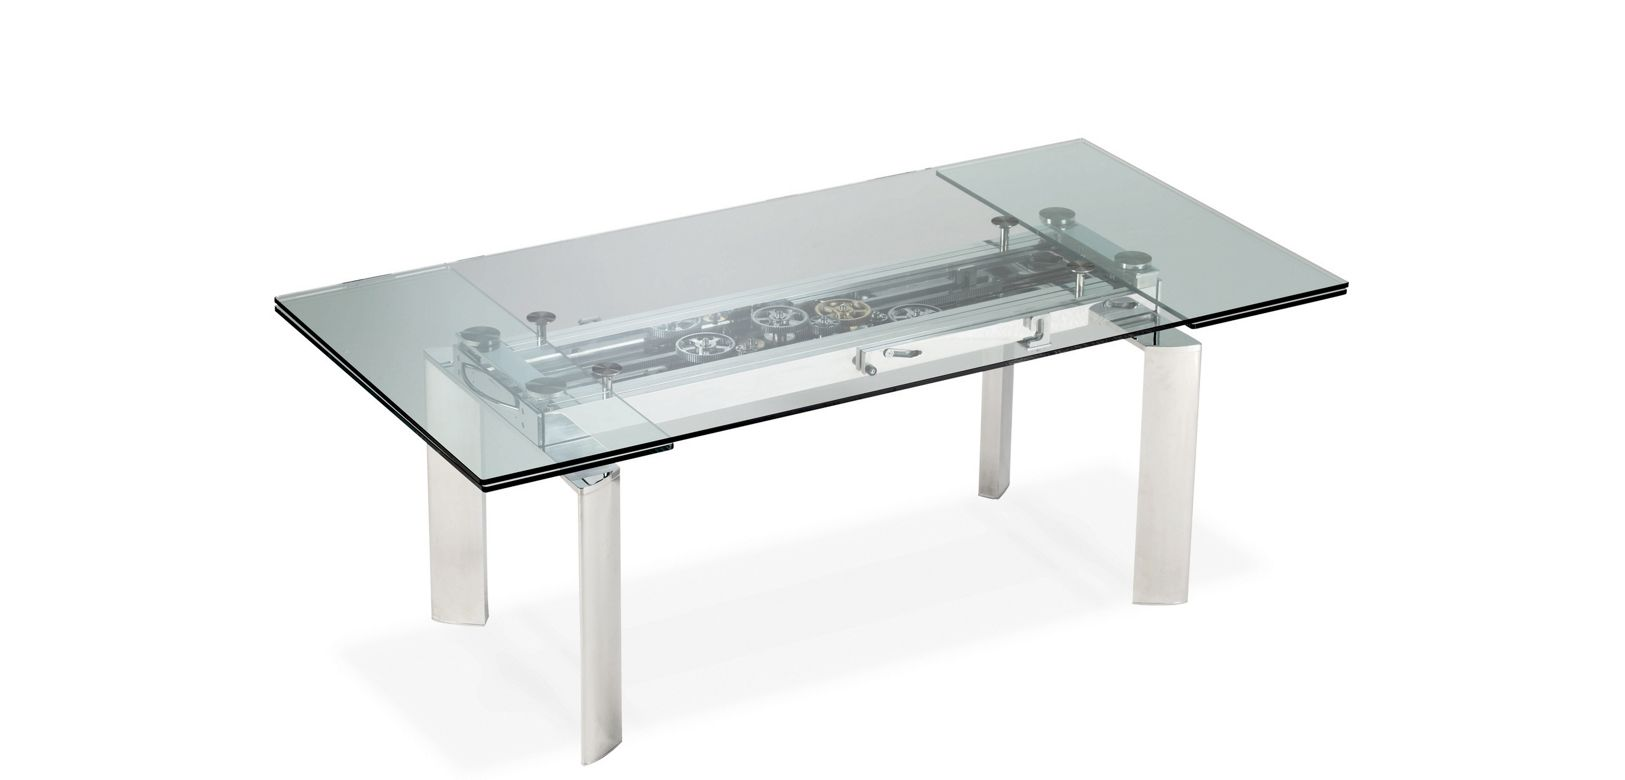 Astrolab dining table roche bobois - Dimensions table a manger ...